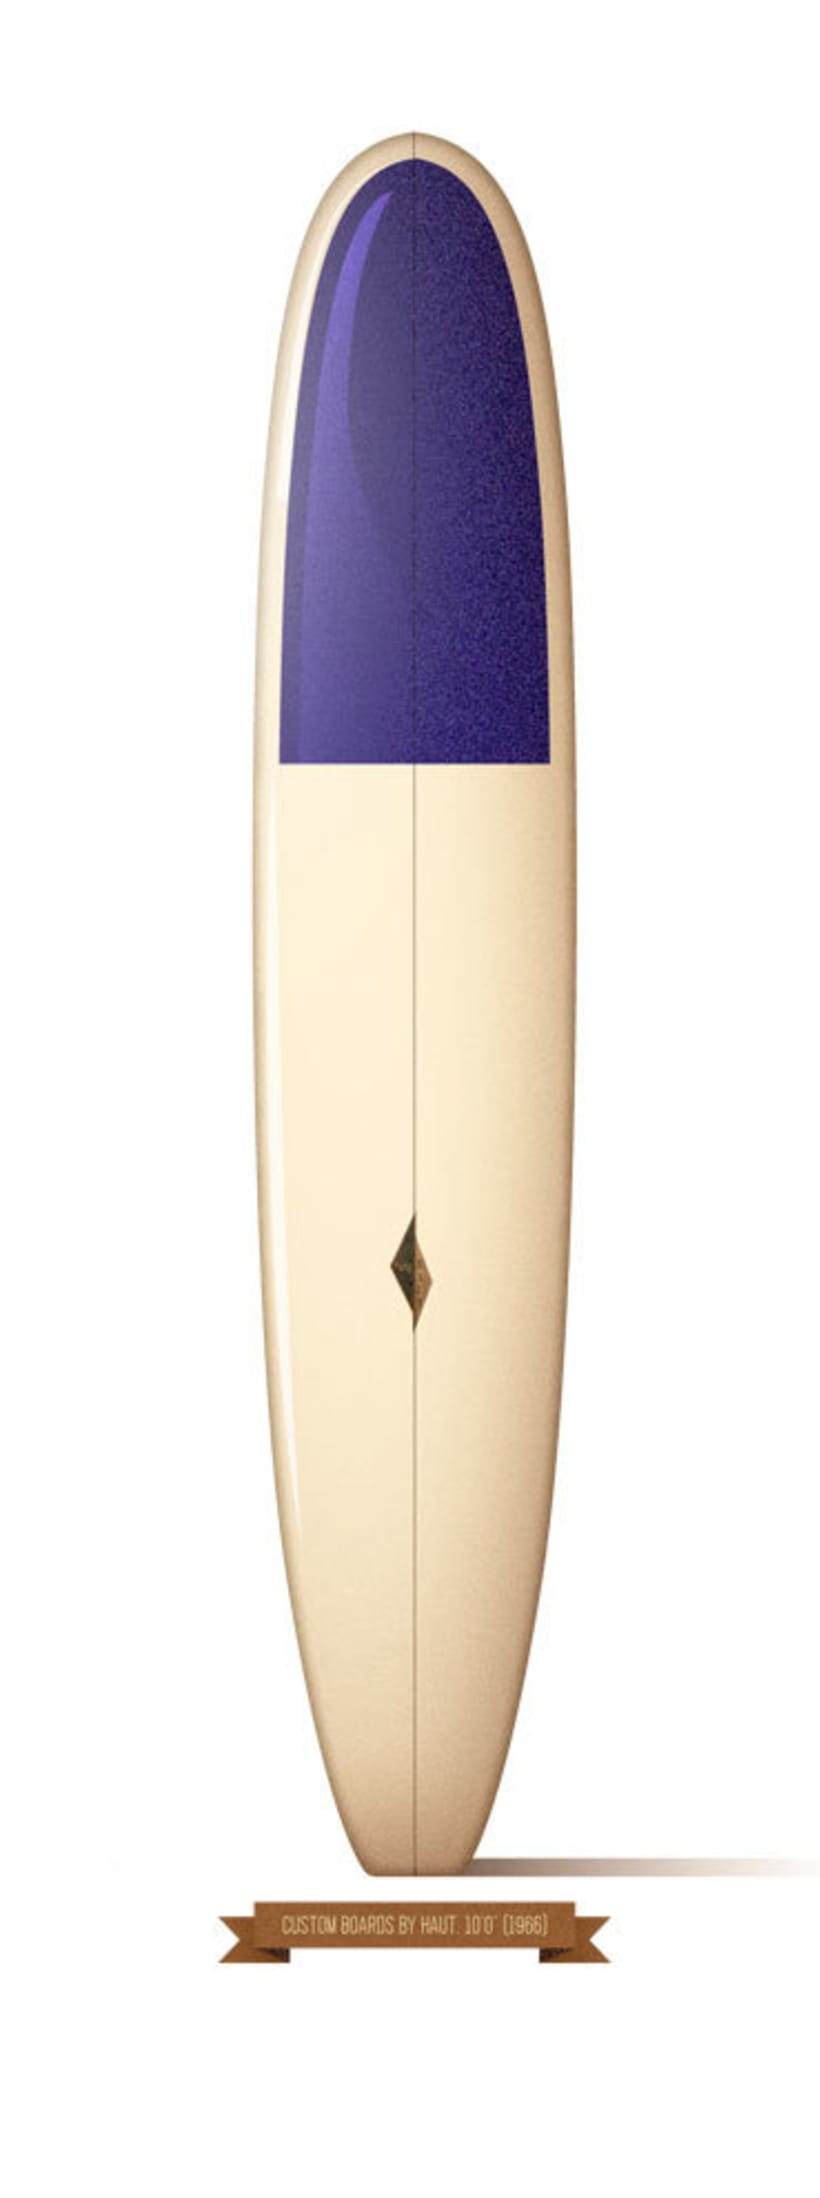 Classics longboards from the 60´s 7